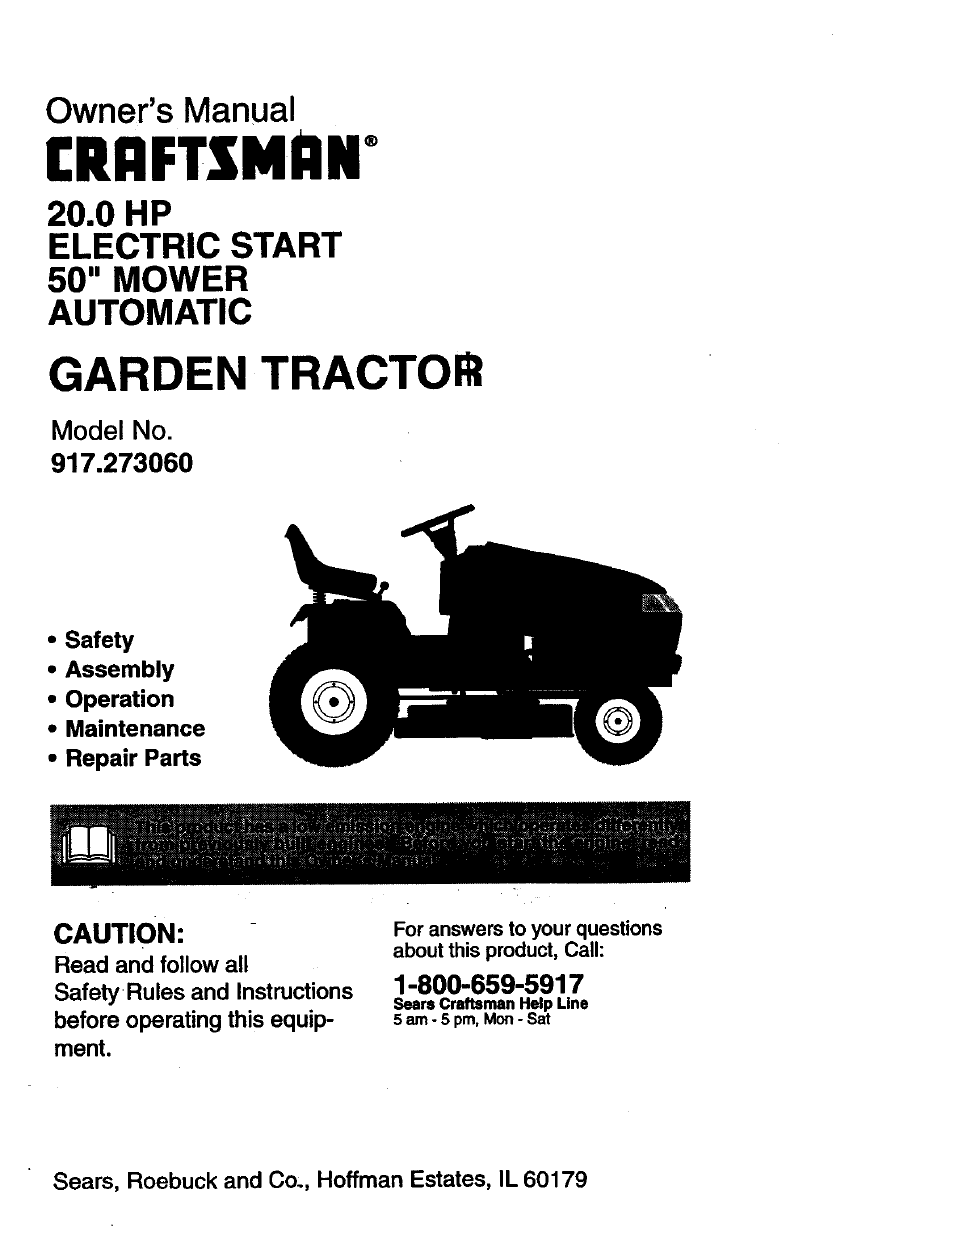 Craftsman garden tractor 917276020 owners manual oukasfo 2010 craftsman gt 5000 owners manual pdf download fandeluxe Image collections